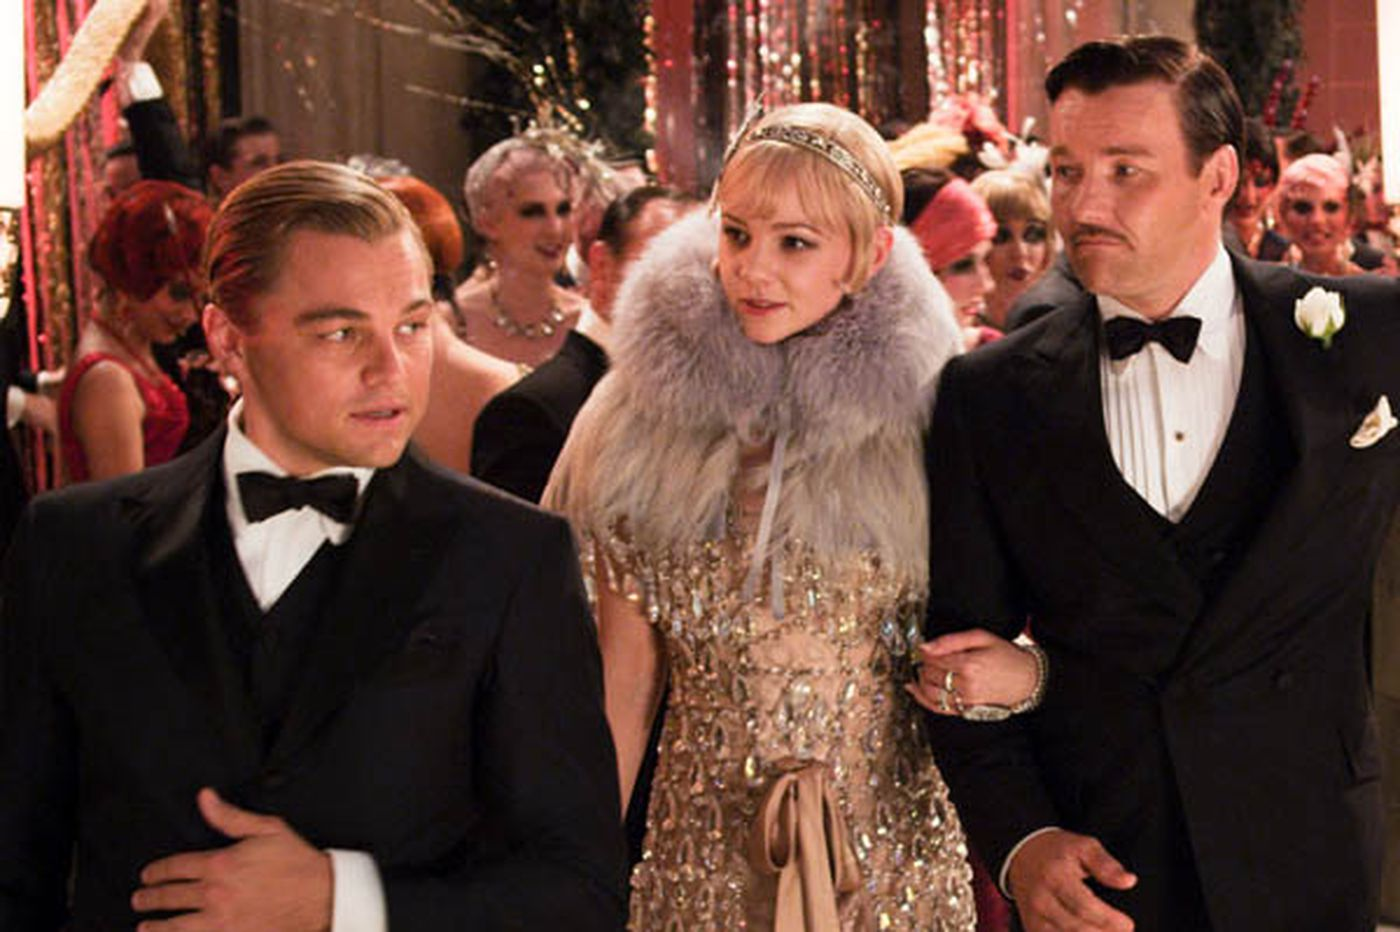 'Gatsby' not so 'Great' after all